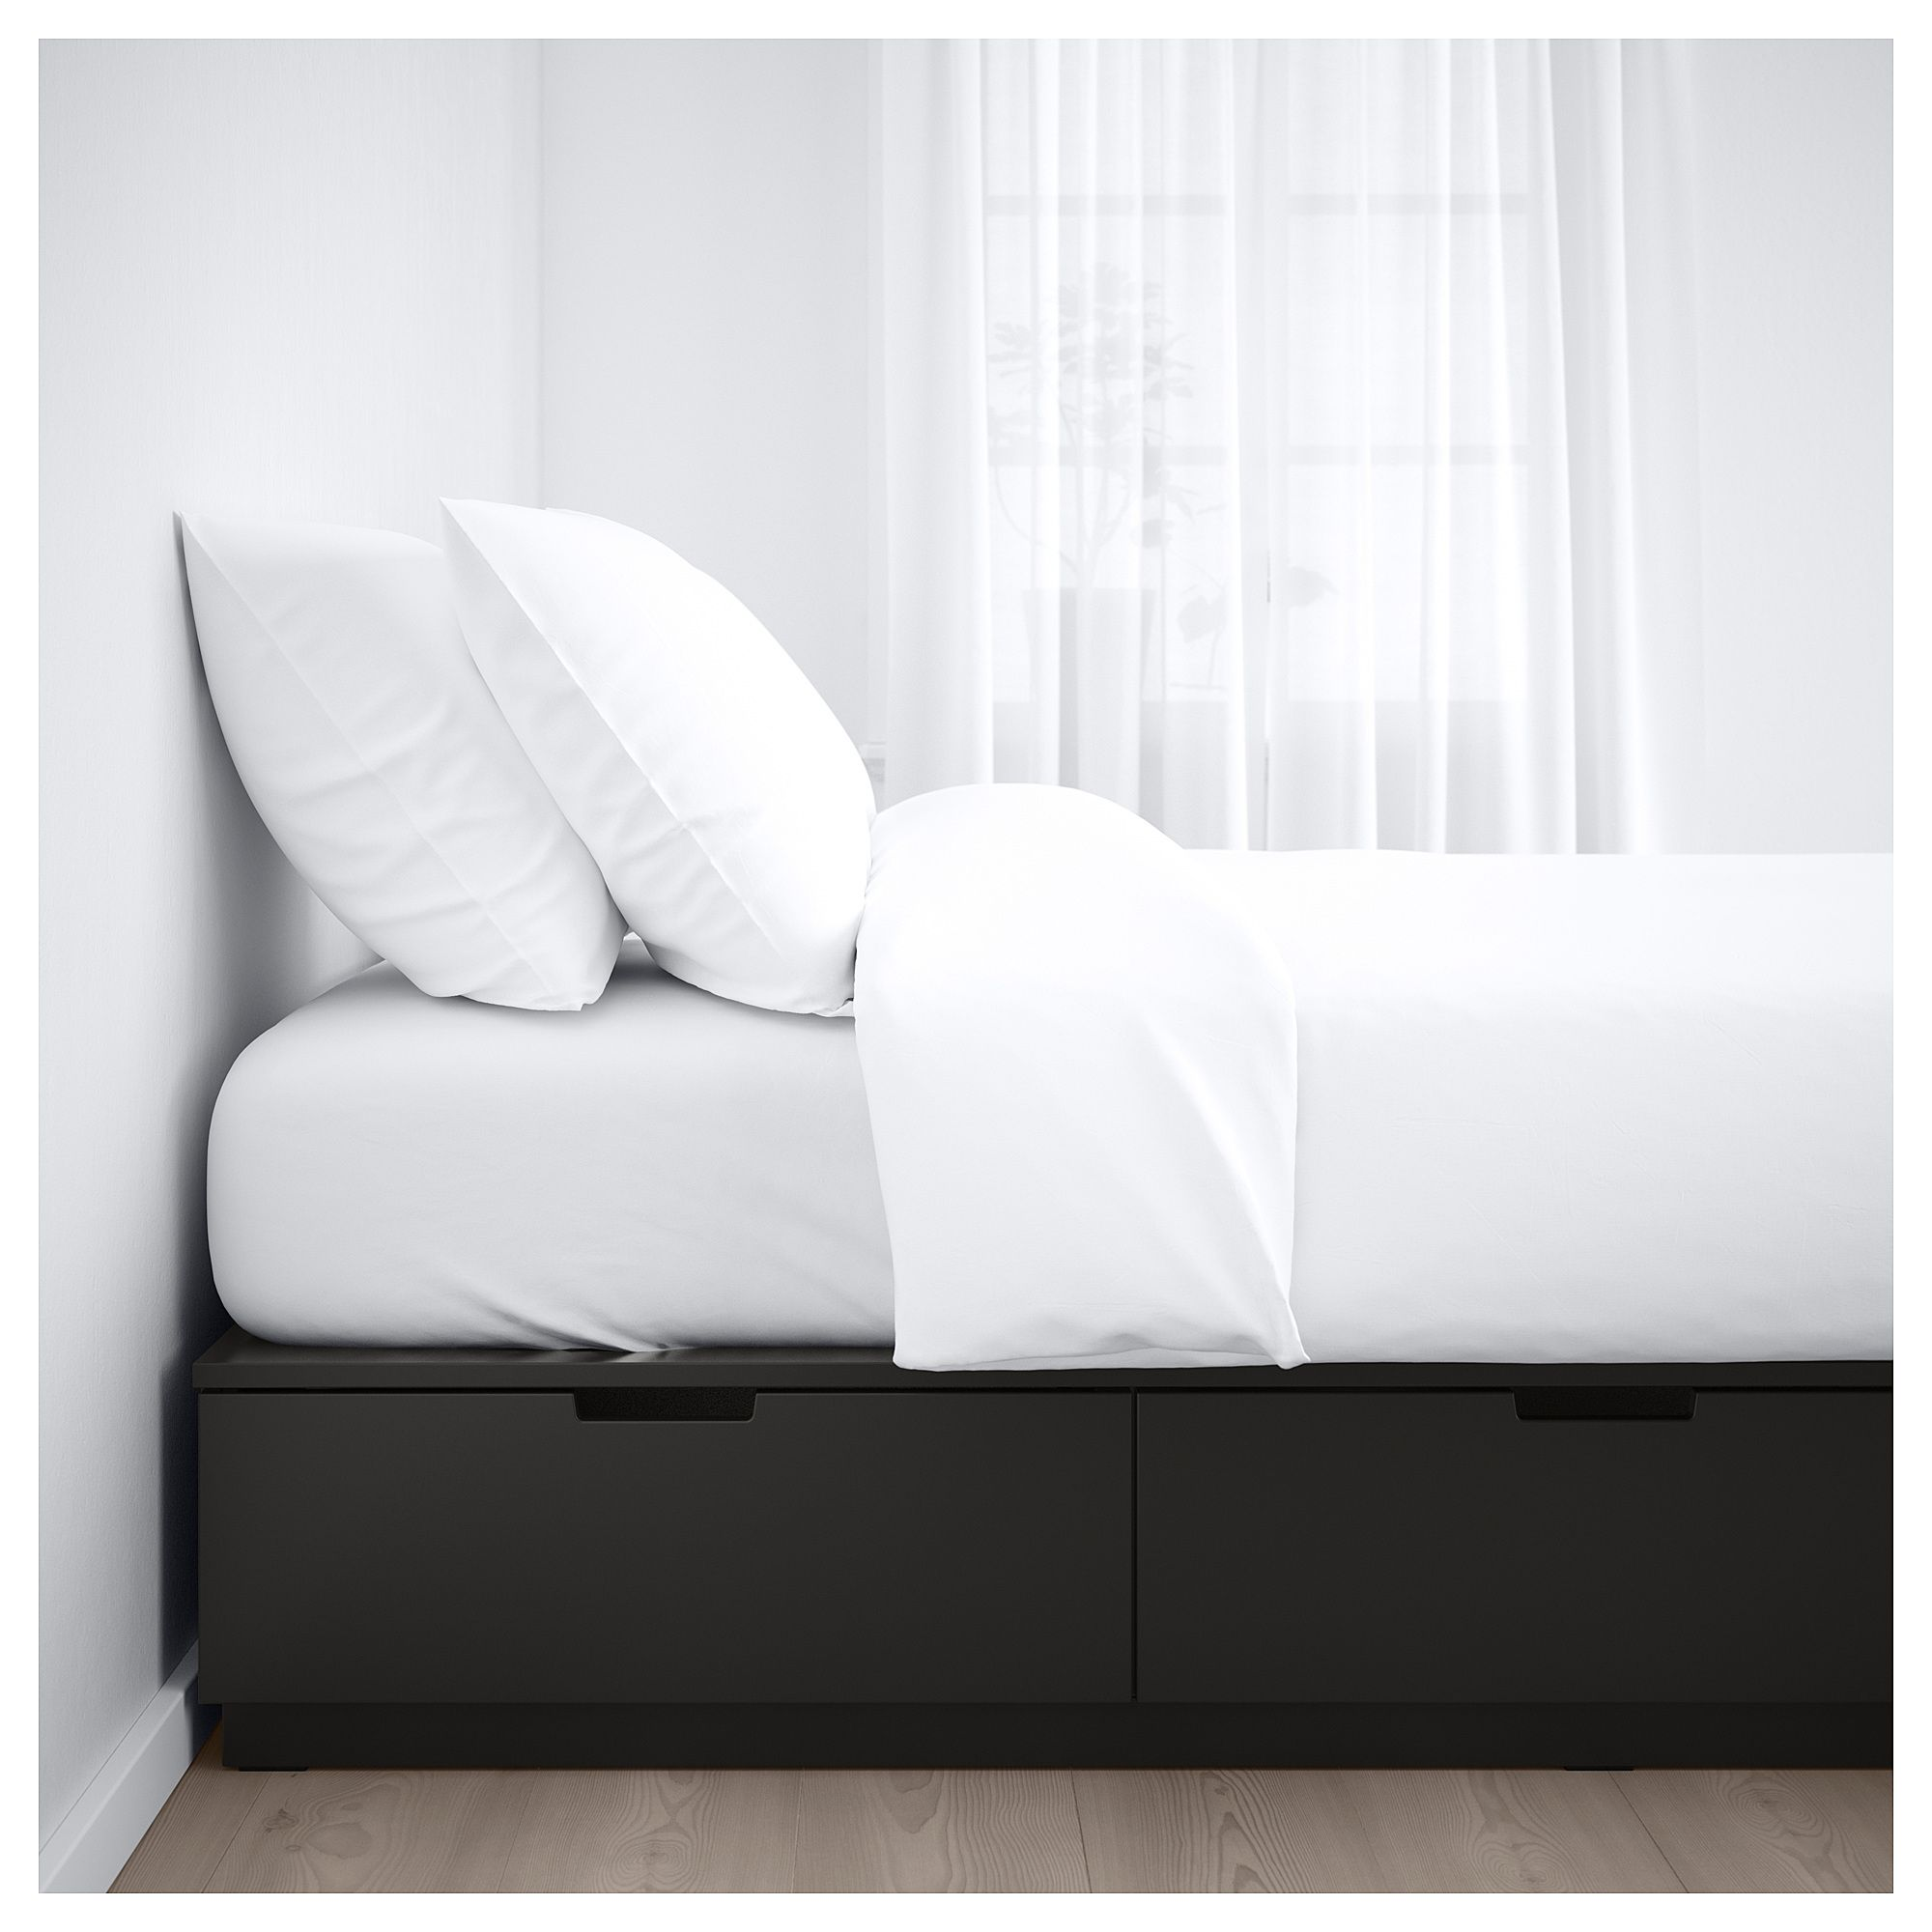 Nordli Bed Frame With Storage Anthracite Ikea Bed Frame With Storage Bed Frame Ikea Nordli